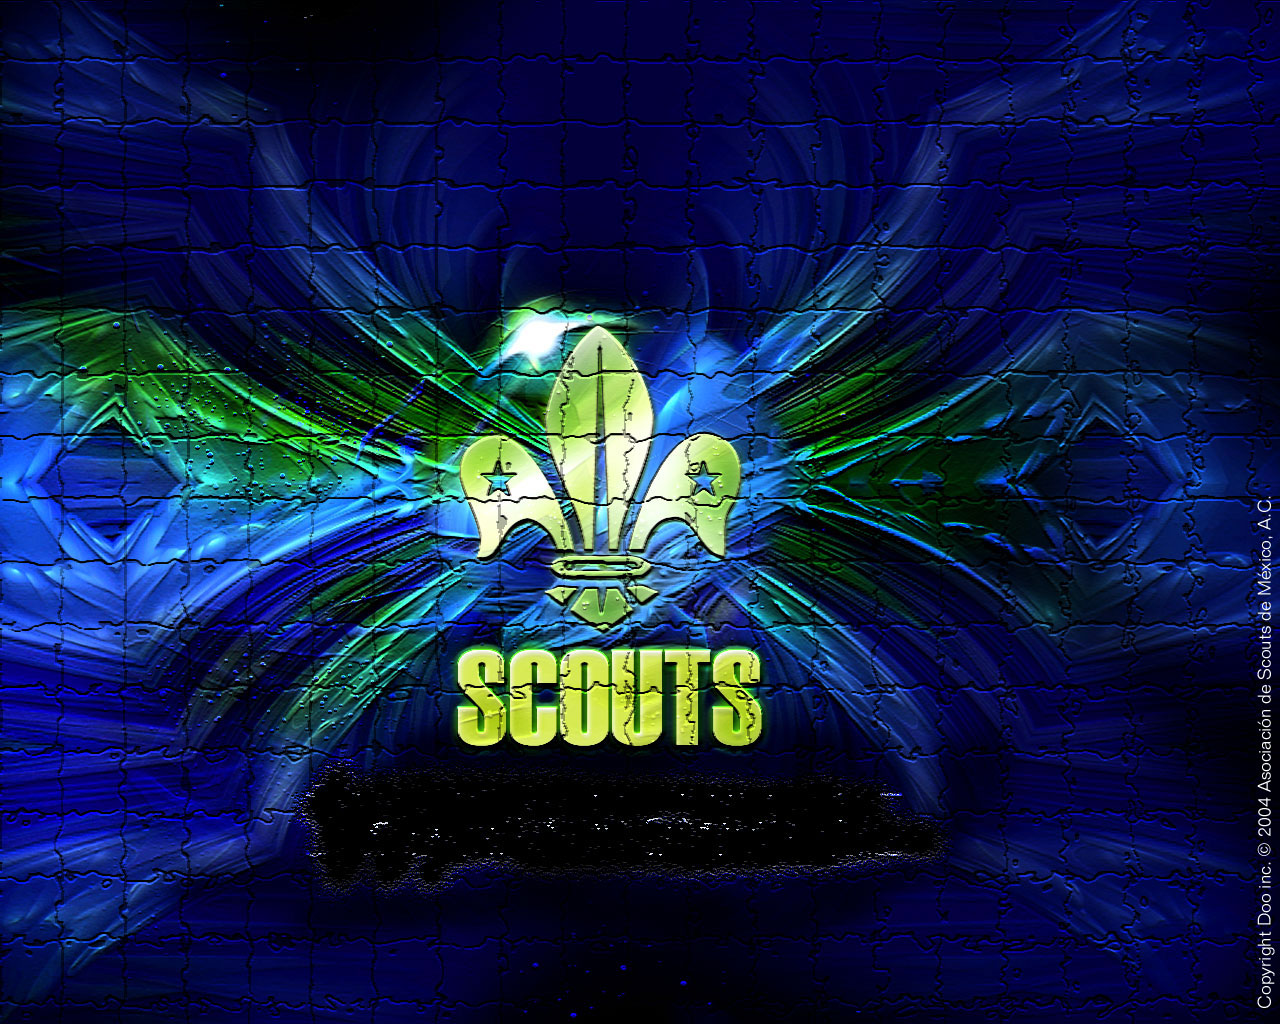 Download Boy Scout Wallpaper Backgrounds Gallery